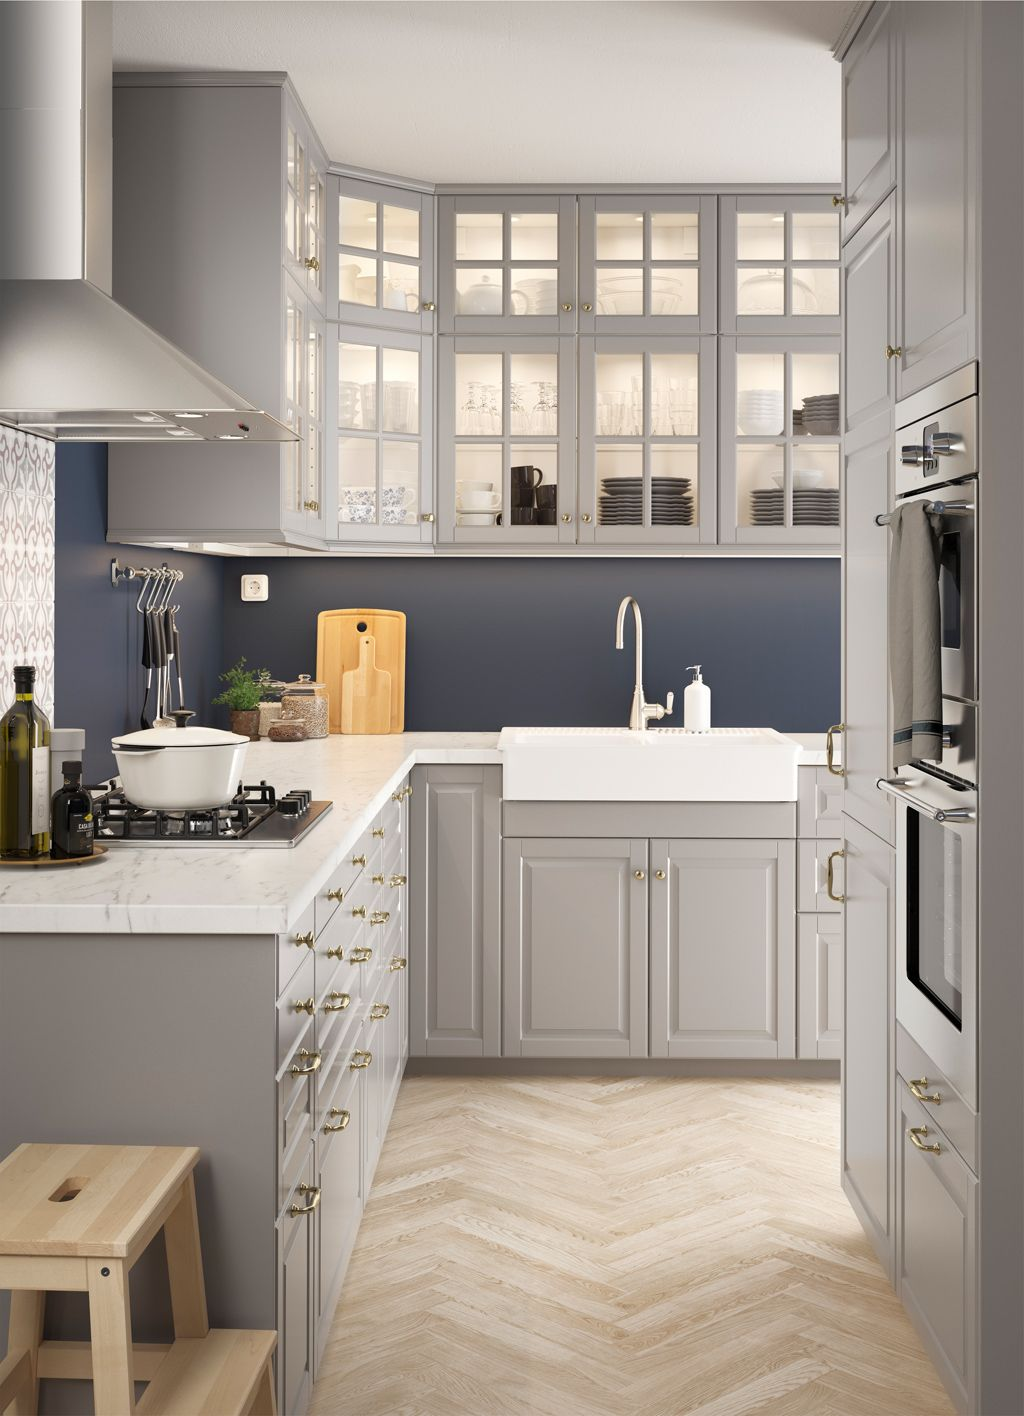 Best Kitchen Gallery: L Shaped Kitchen With Traditional Wall And Base Cabi S With Grey of Grey Kitchen Cabinets Ikea on cal-ite.com